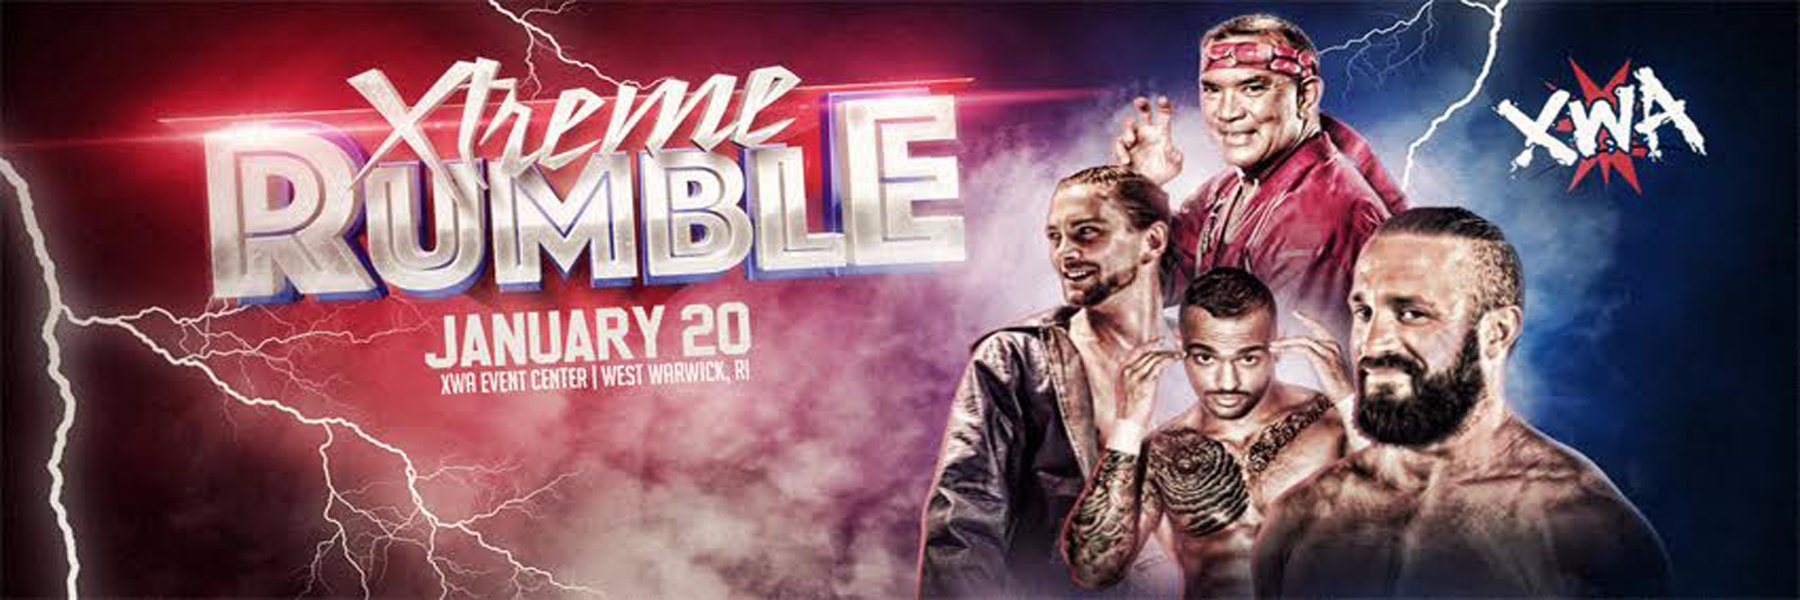 The 17th Annual Xtreme Rumble